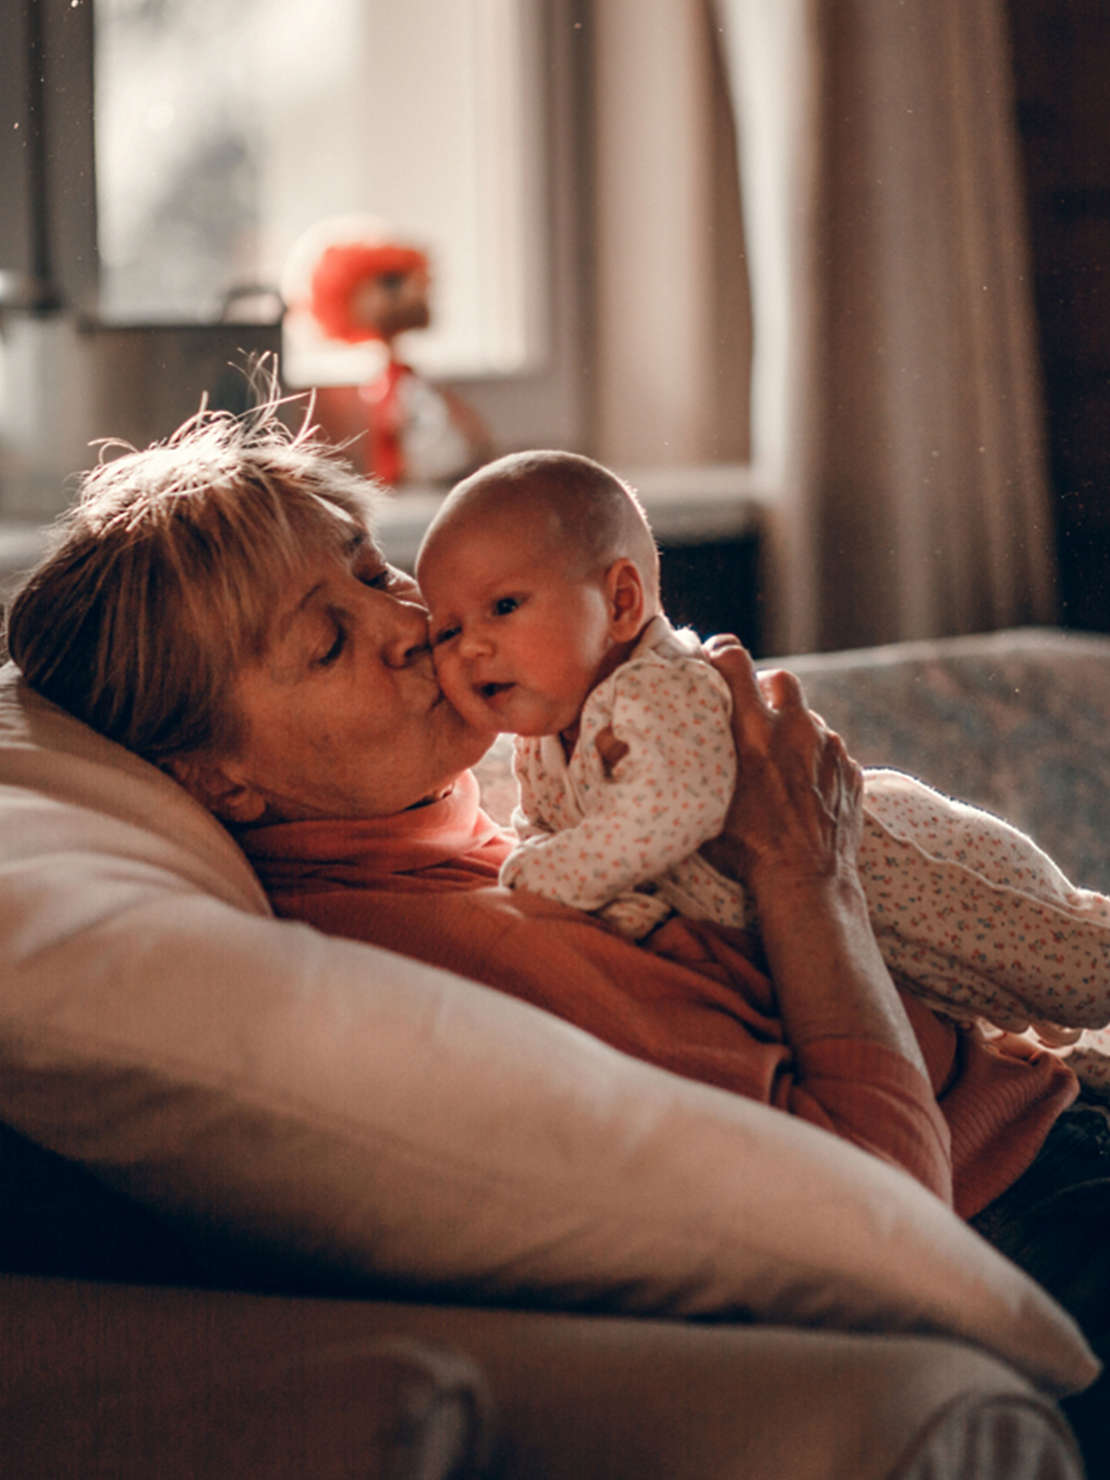 Grandmother holding grand baby on couch